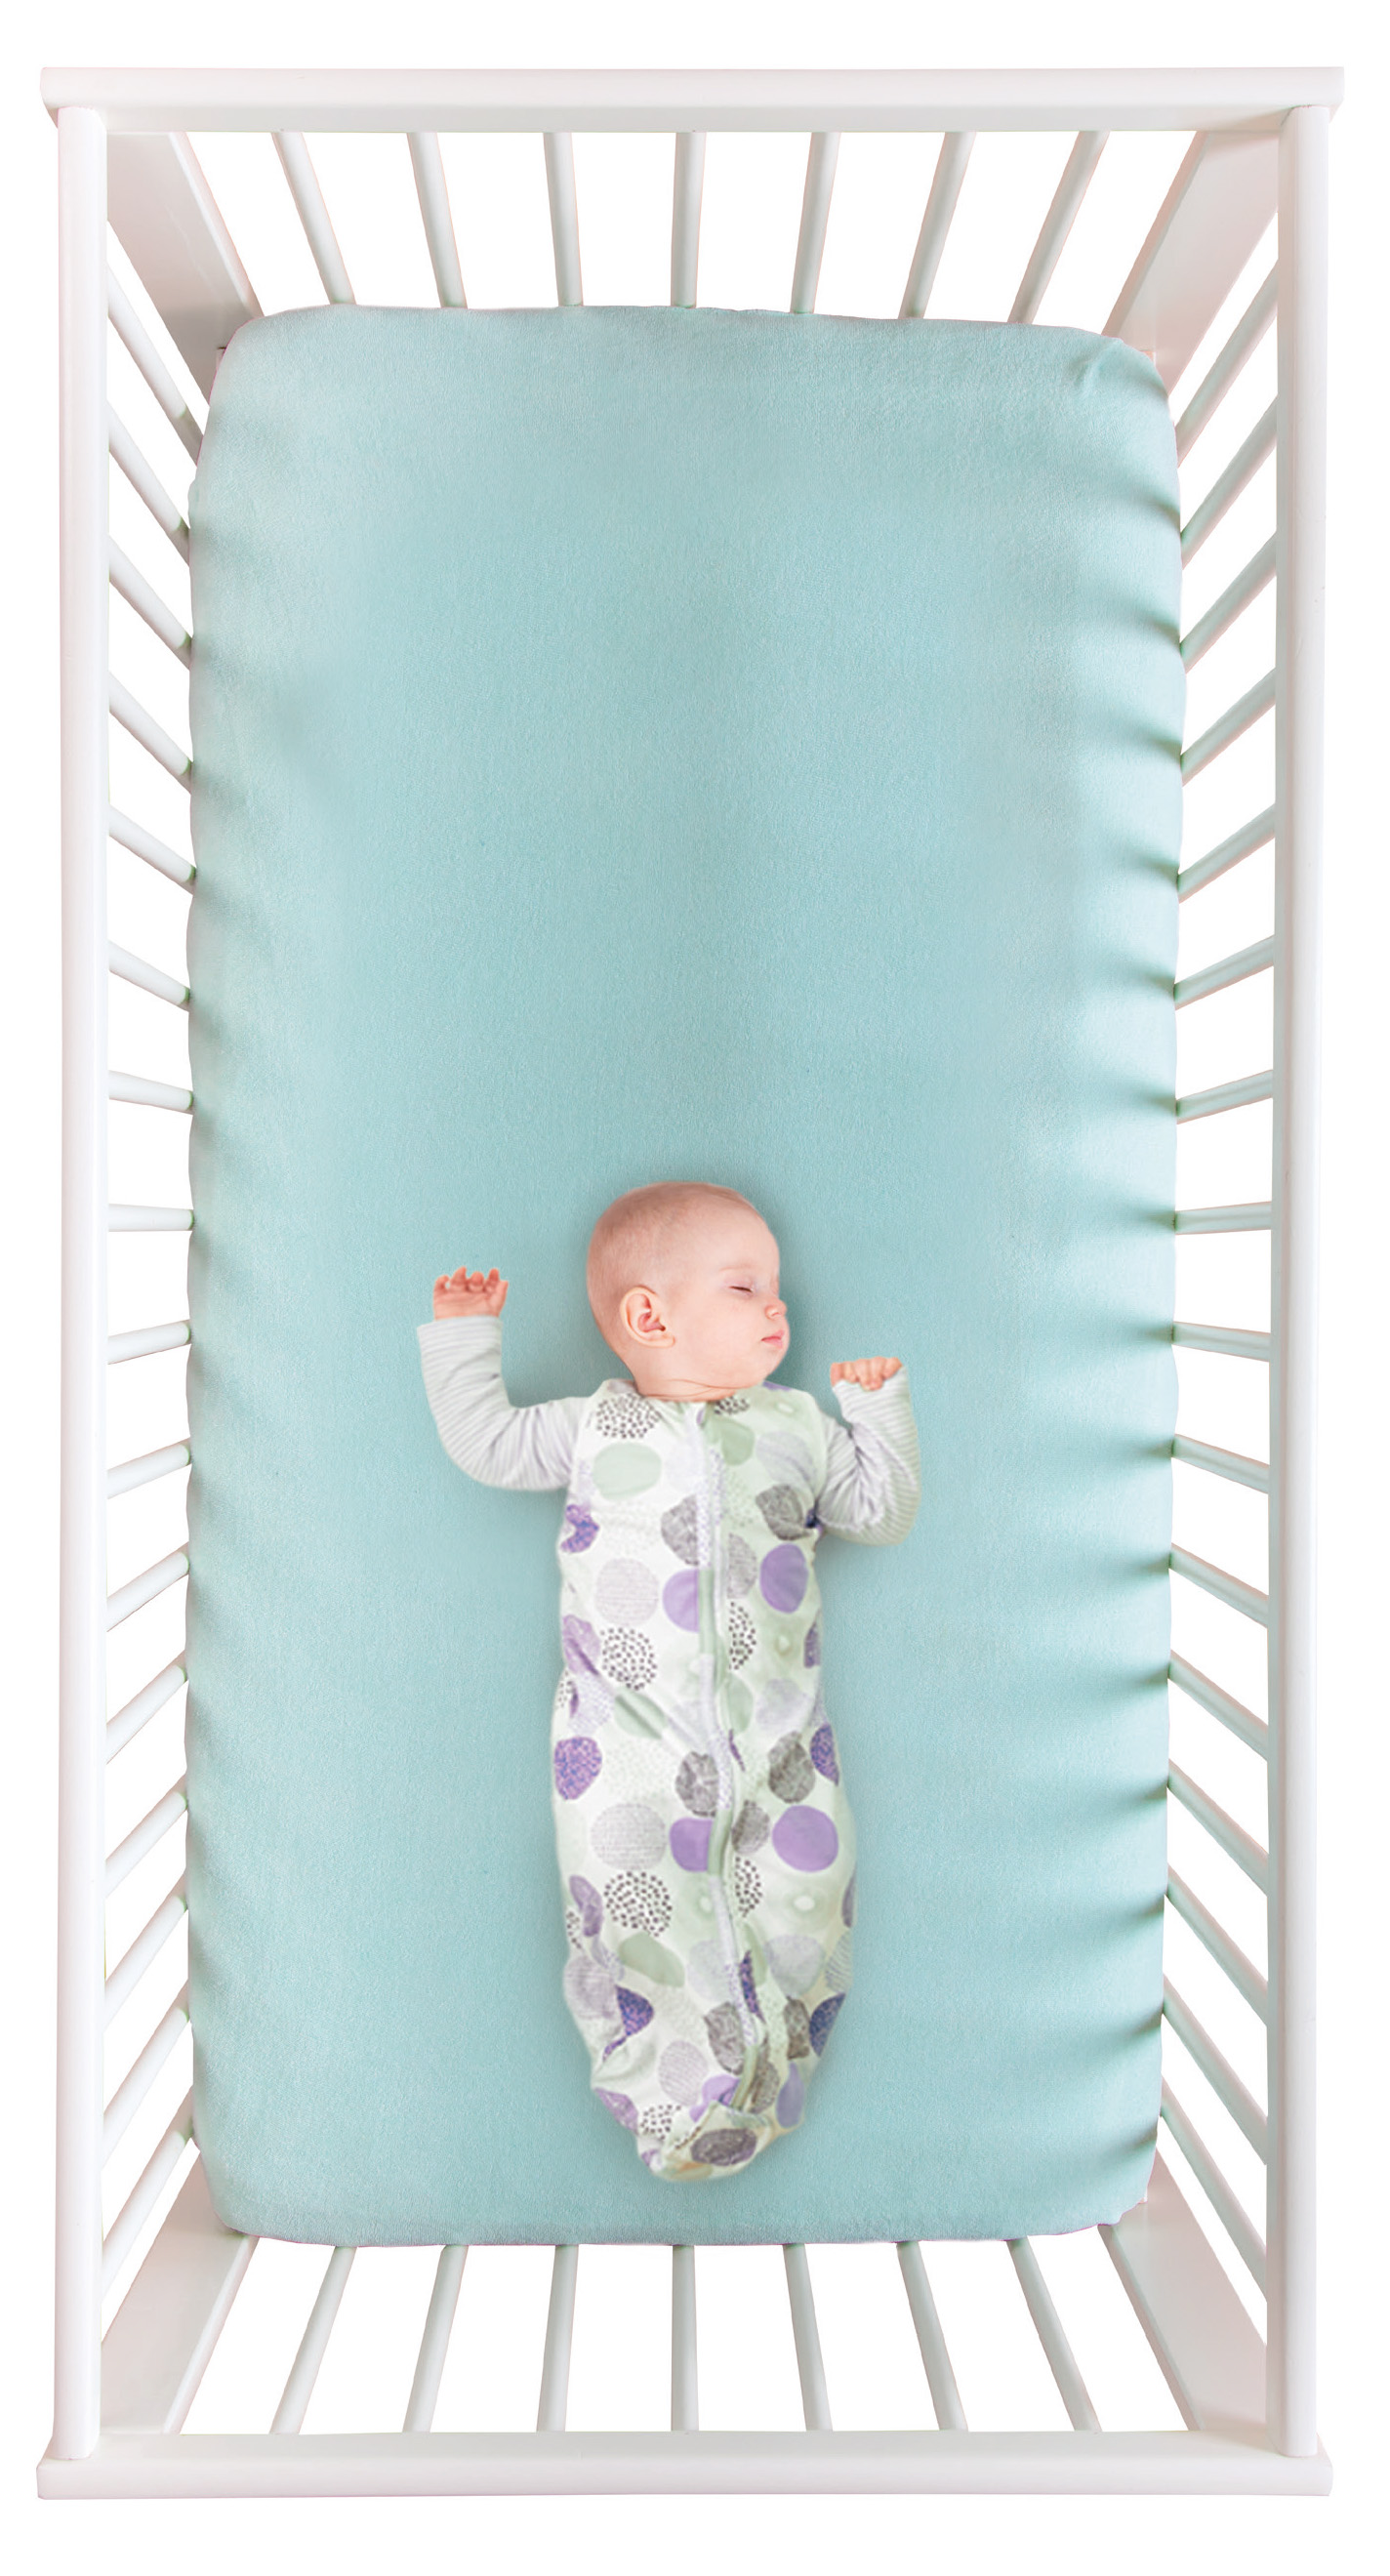 4caefa47 Child Safety - Safe Sleep for your Baby - HSE.ie